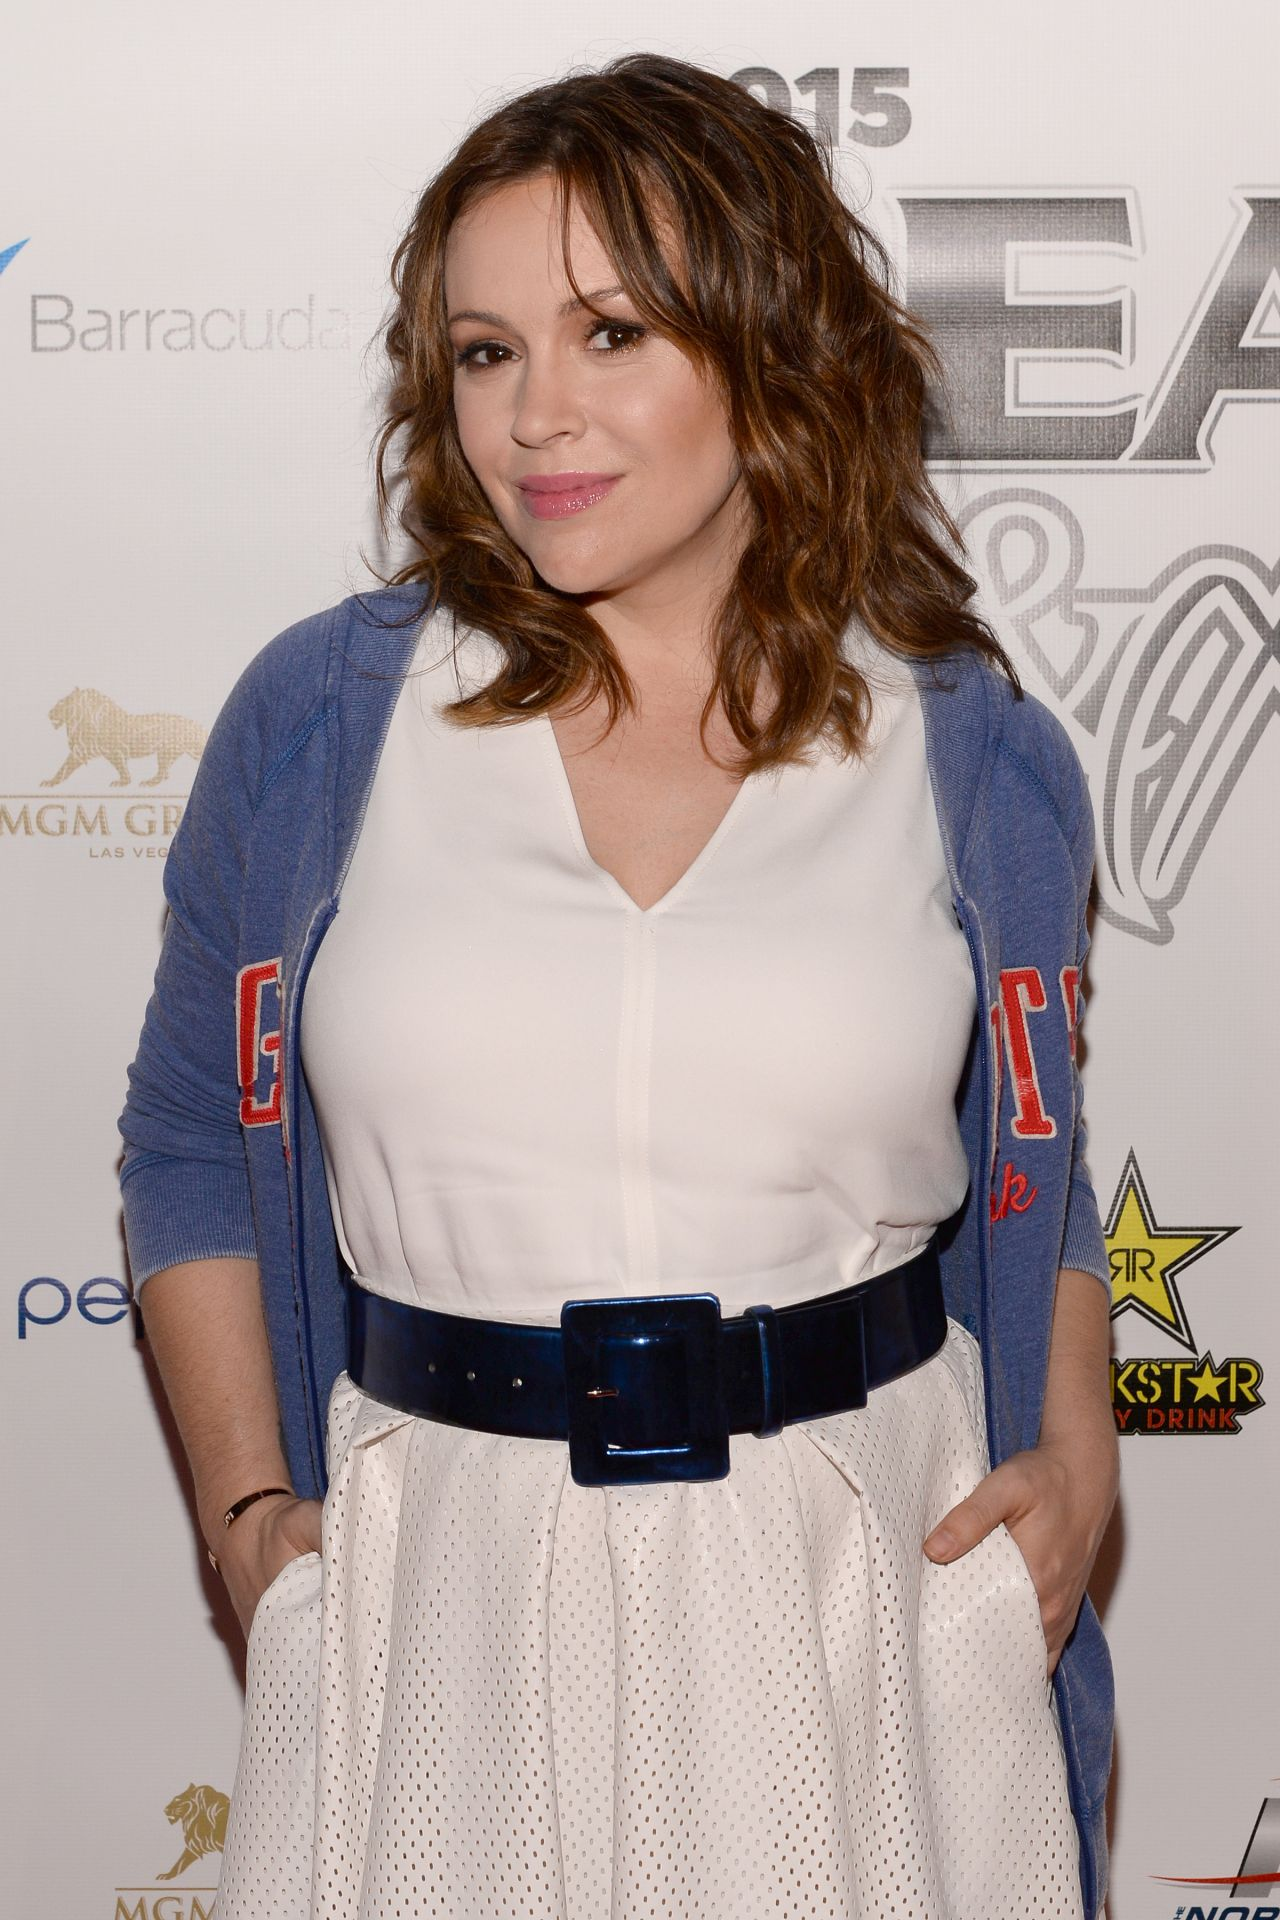 Alyssa Milano - 2015 Leather & Laces Super Bowl XLIX Party in Phoenix